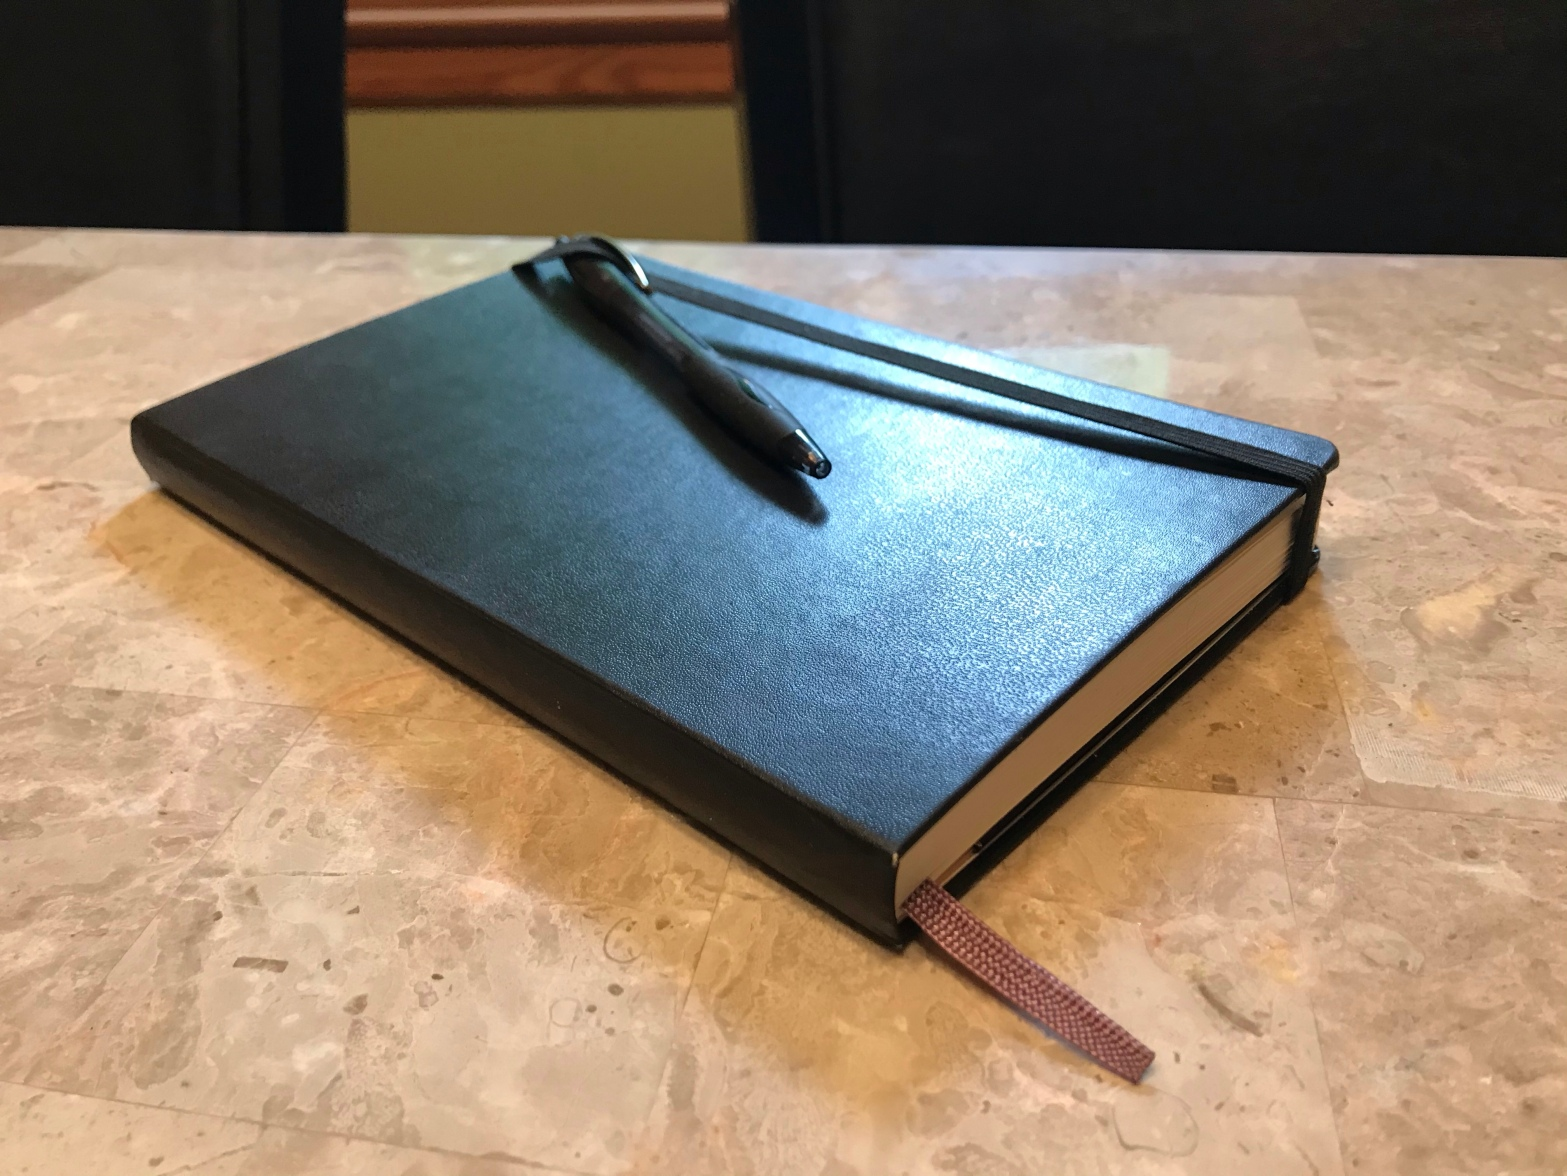 A black Moleskin journal with a black pen tucked into the band, sitting on a marble tabletop.